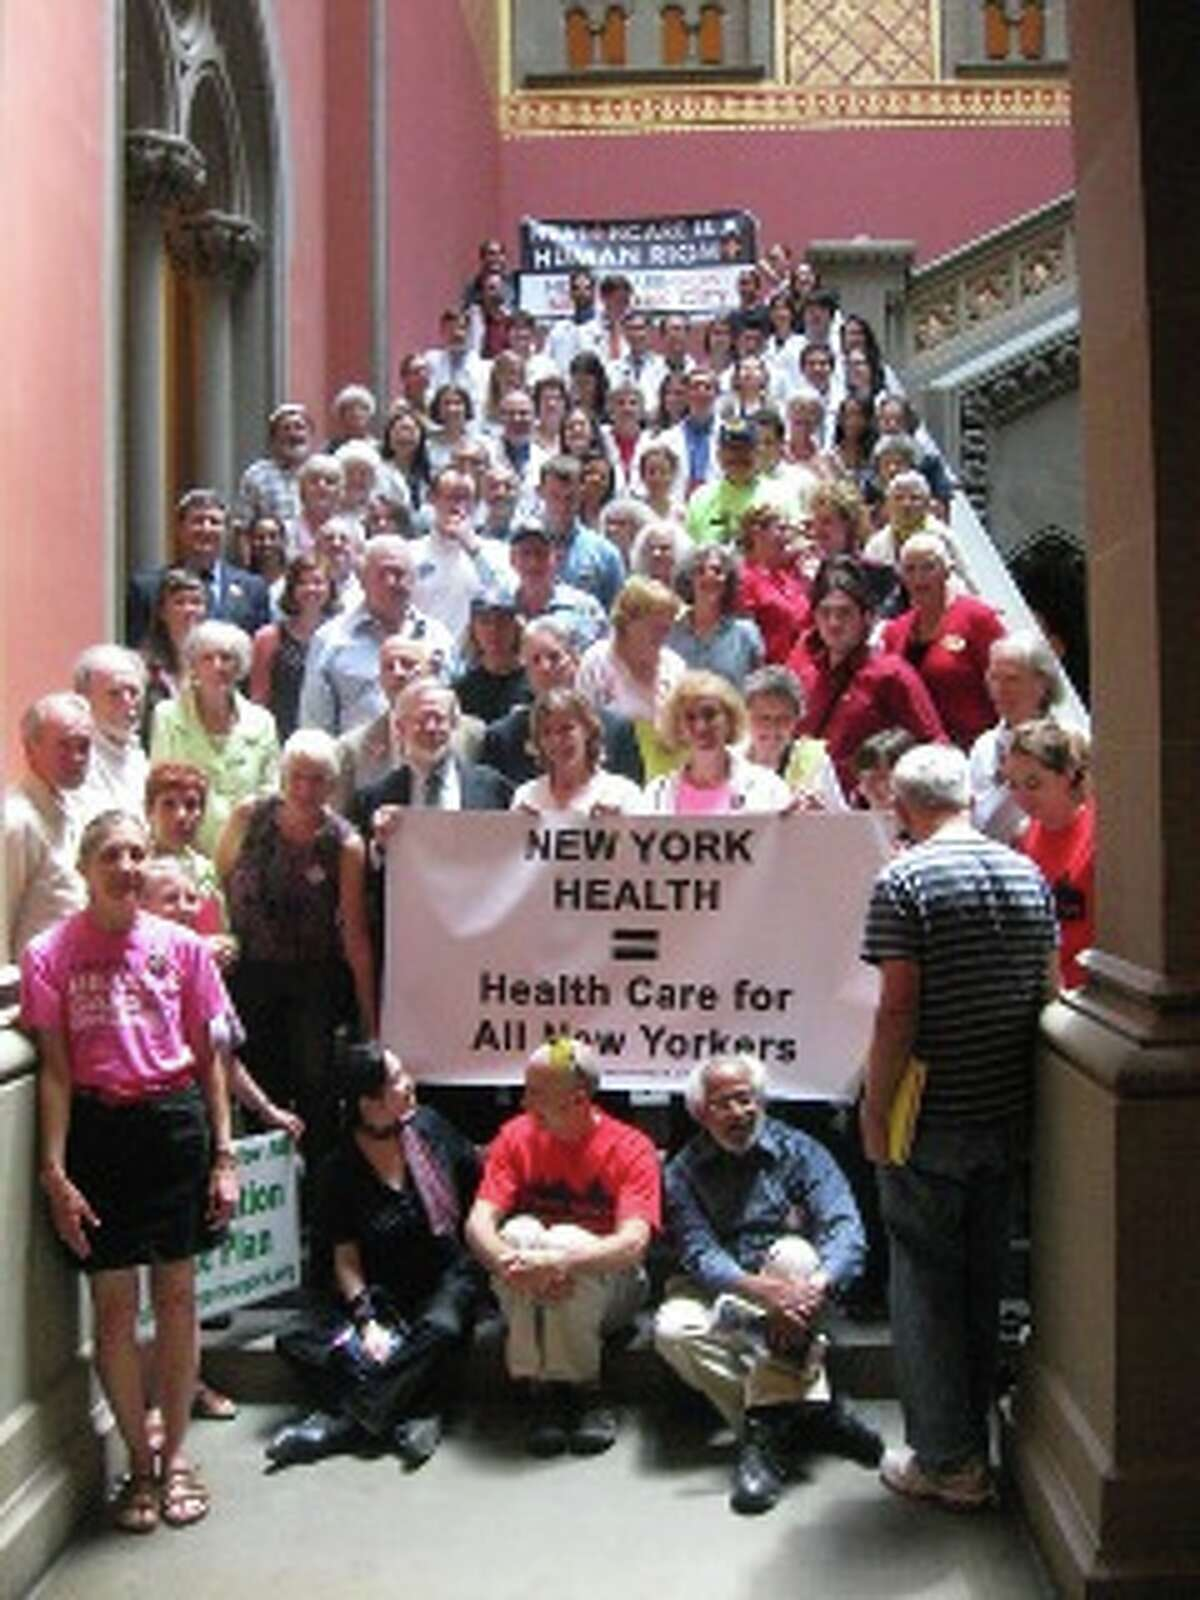 A coalition of groups supporting universal health coverage lobbied the Capitol in May. Assemblyman Richard Gottfried (D-Manhattan) is pictured on the left corner of the sign. (Photo: Alice Brody)